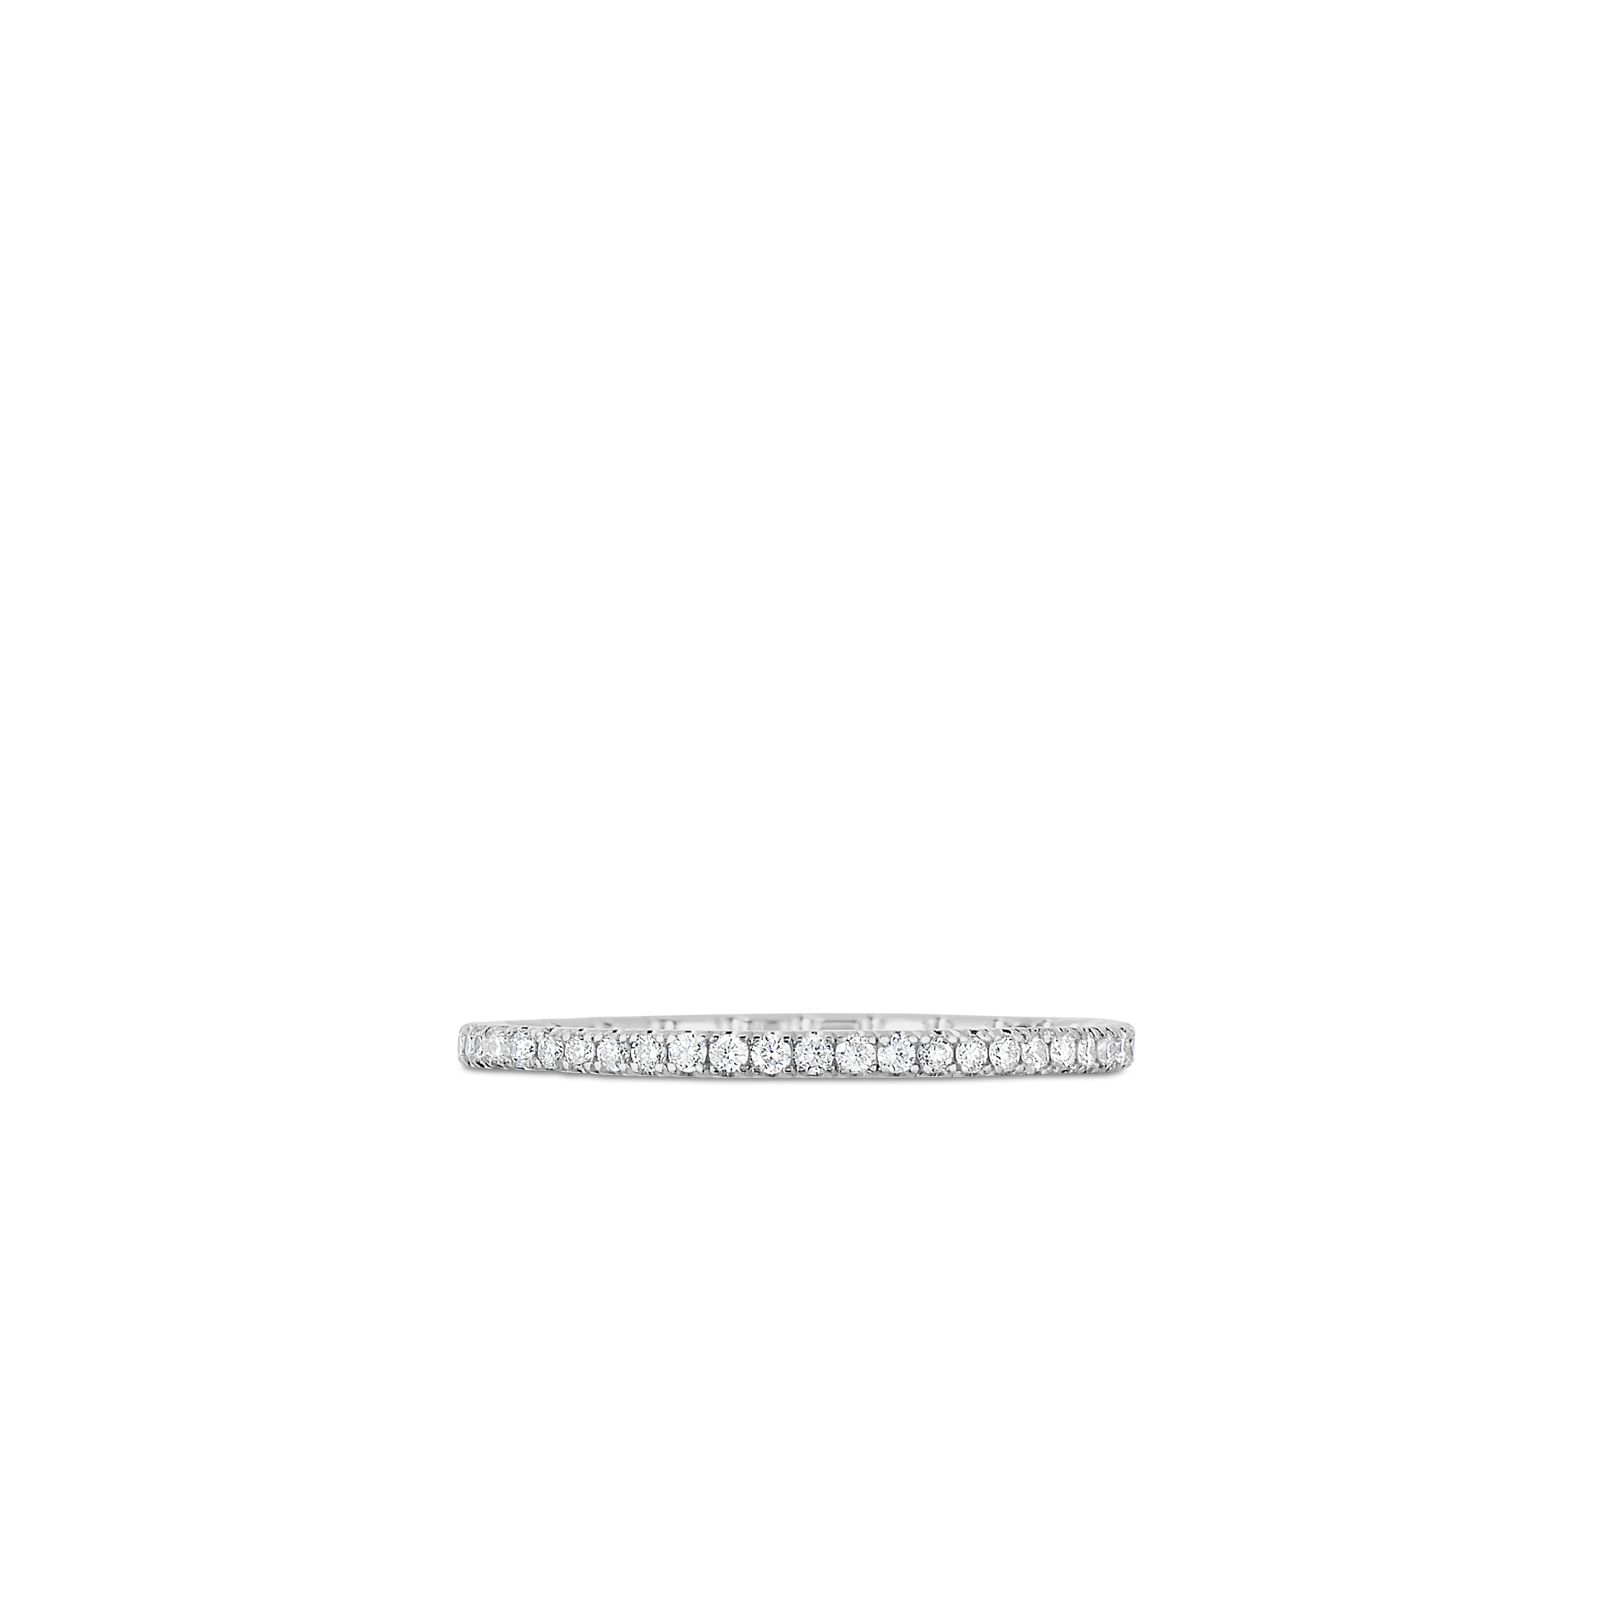 Roberto Coin Classic Diamond 18K White Gold Eternity Band Ring With Diamonds